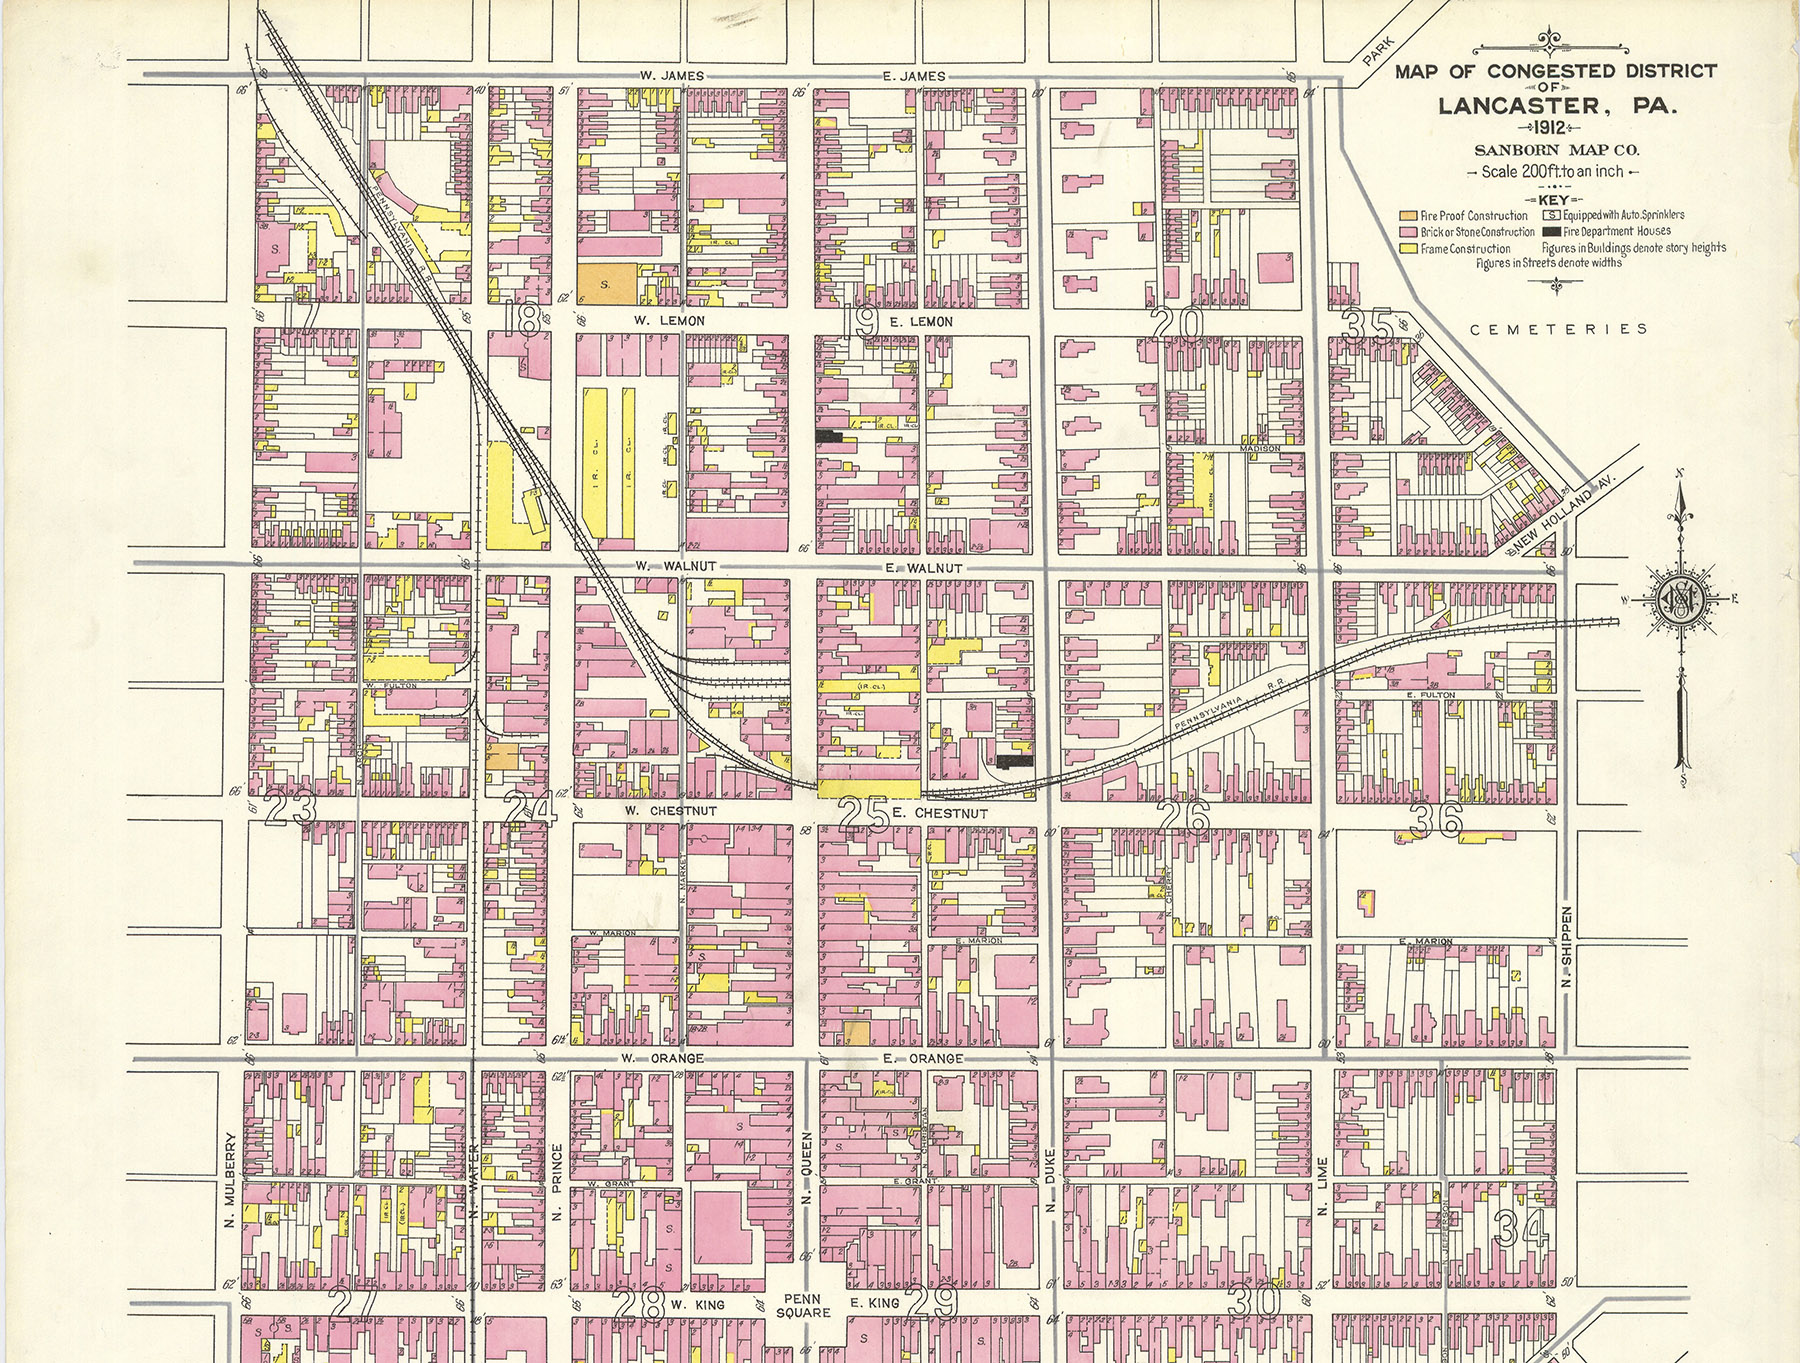 1912 map detail showing the congested area surrounding the original alignment of the Philadelphia and Columbia route which became the PRR's original main line through Lancaster. The station was located at Queen and Chestnut Streets (location 25 on the map) and the freight terminal was on the corner of Prince and Walnut Streets (upper left from station). Map collection of the Penn State University Library